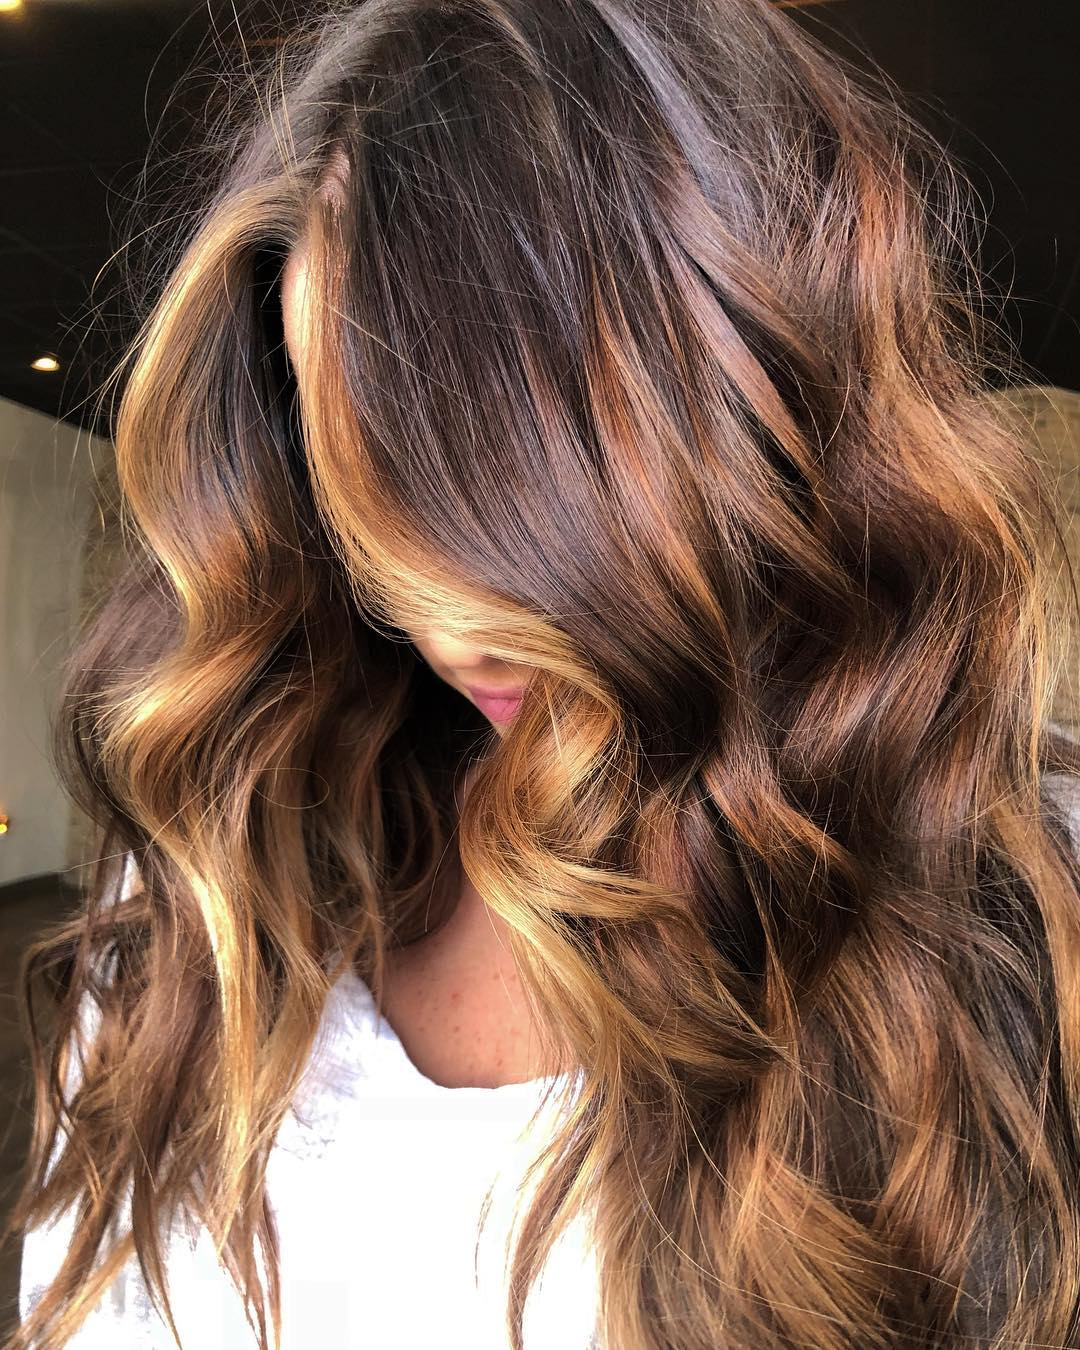 Rose-Gold Streaks for Dark Hair